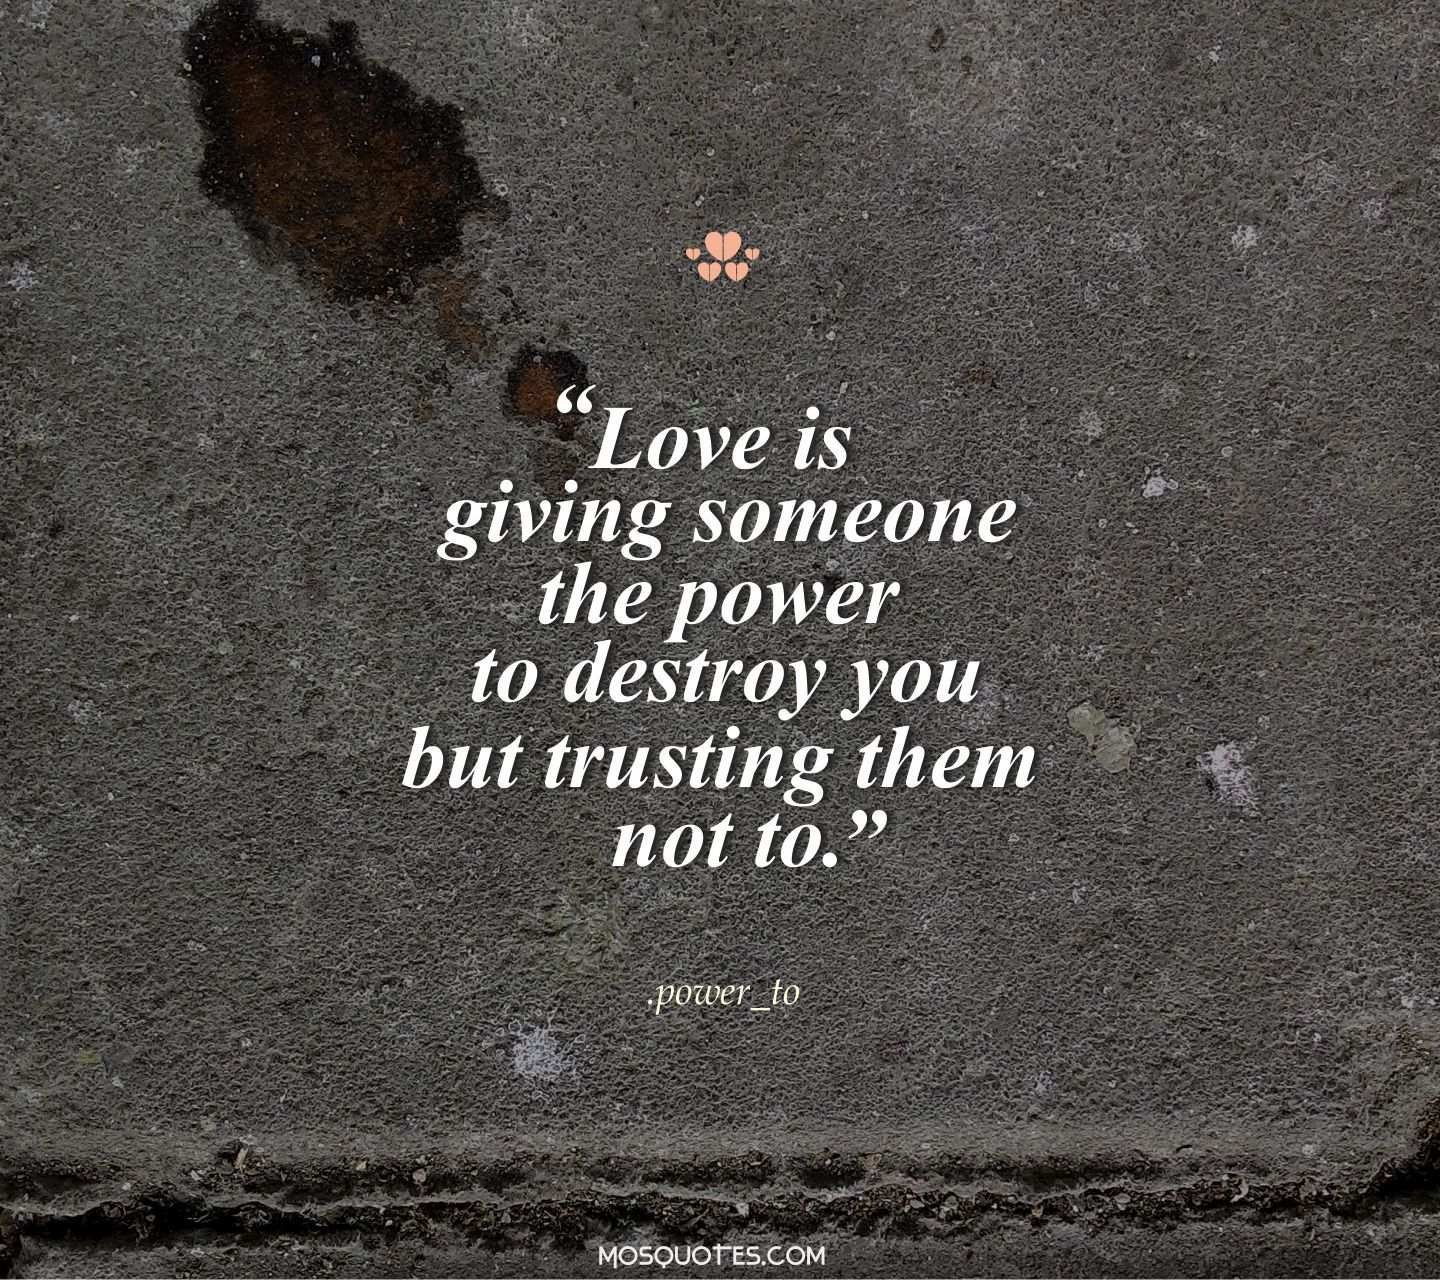 Cute Emo Love Quotes Love Is Giving Someone The Power To Destroy You But  Trusting Them